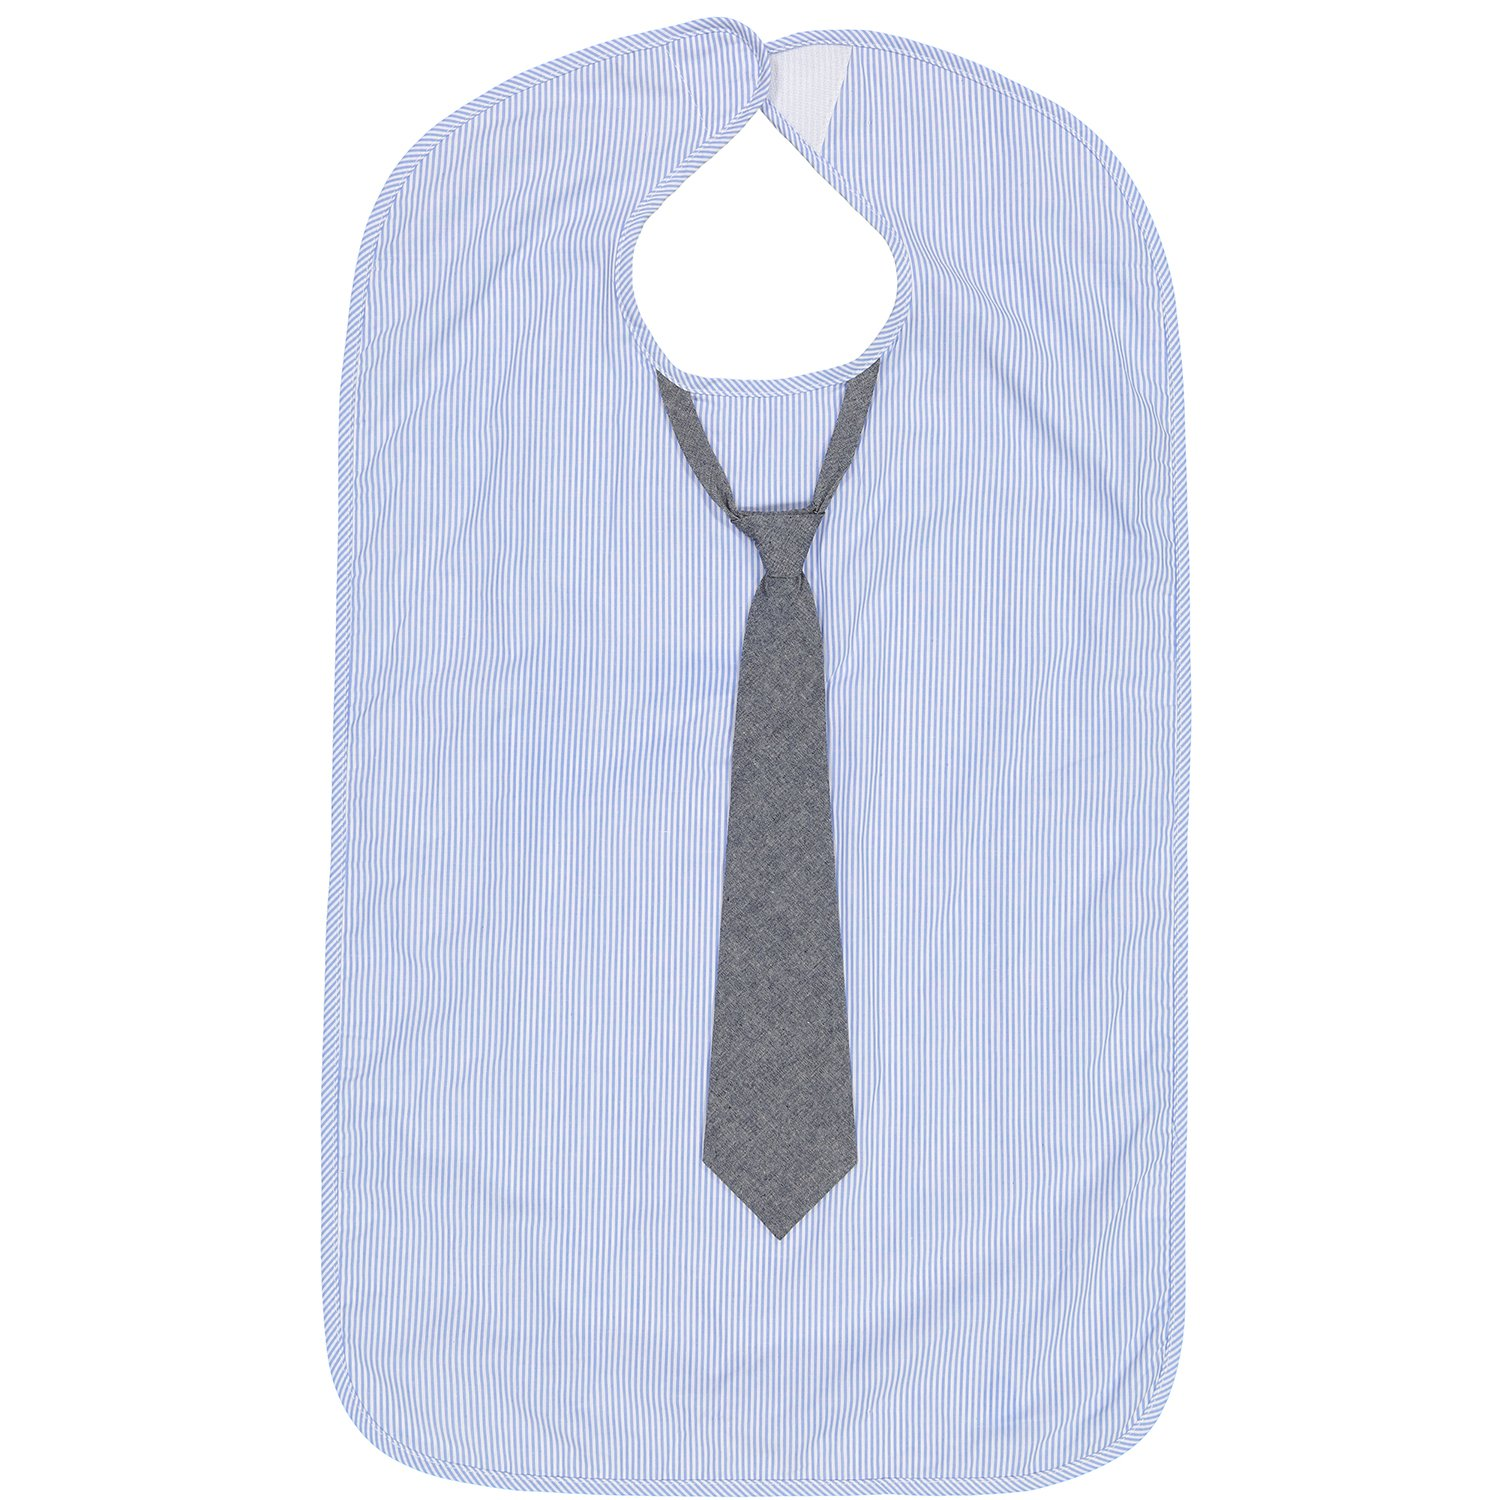 Frenchie Mini Couture Mens Waterproof Adult Bib Grey Tuxedo with 3D Bowtie